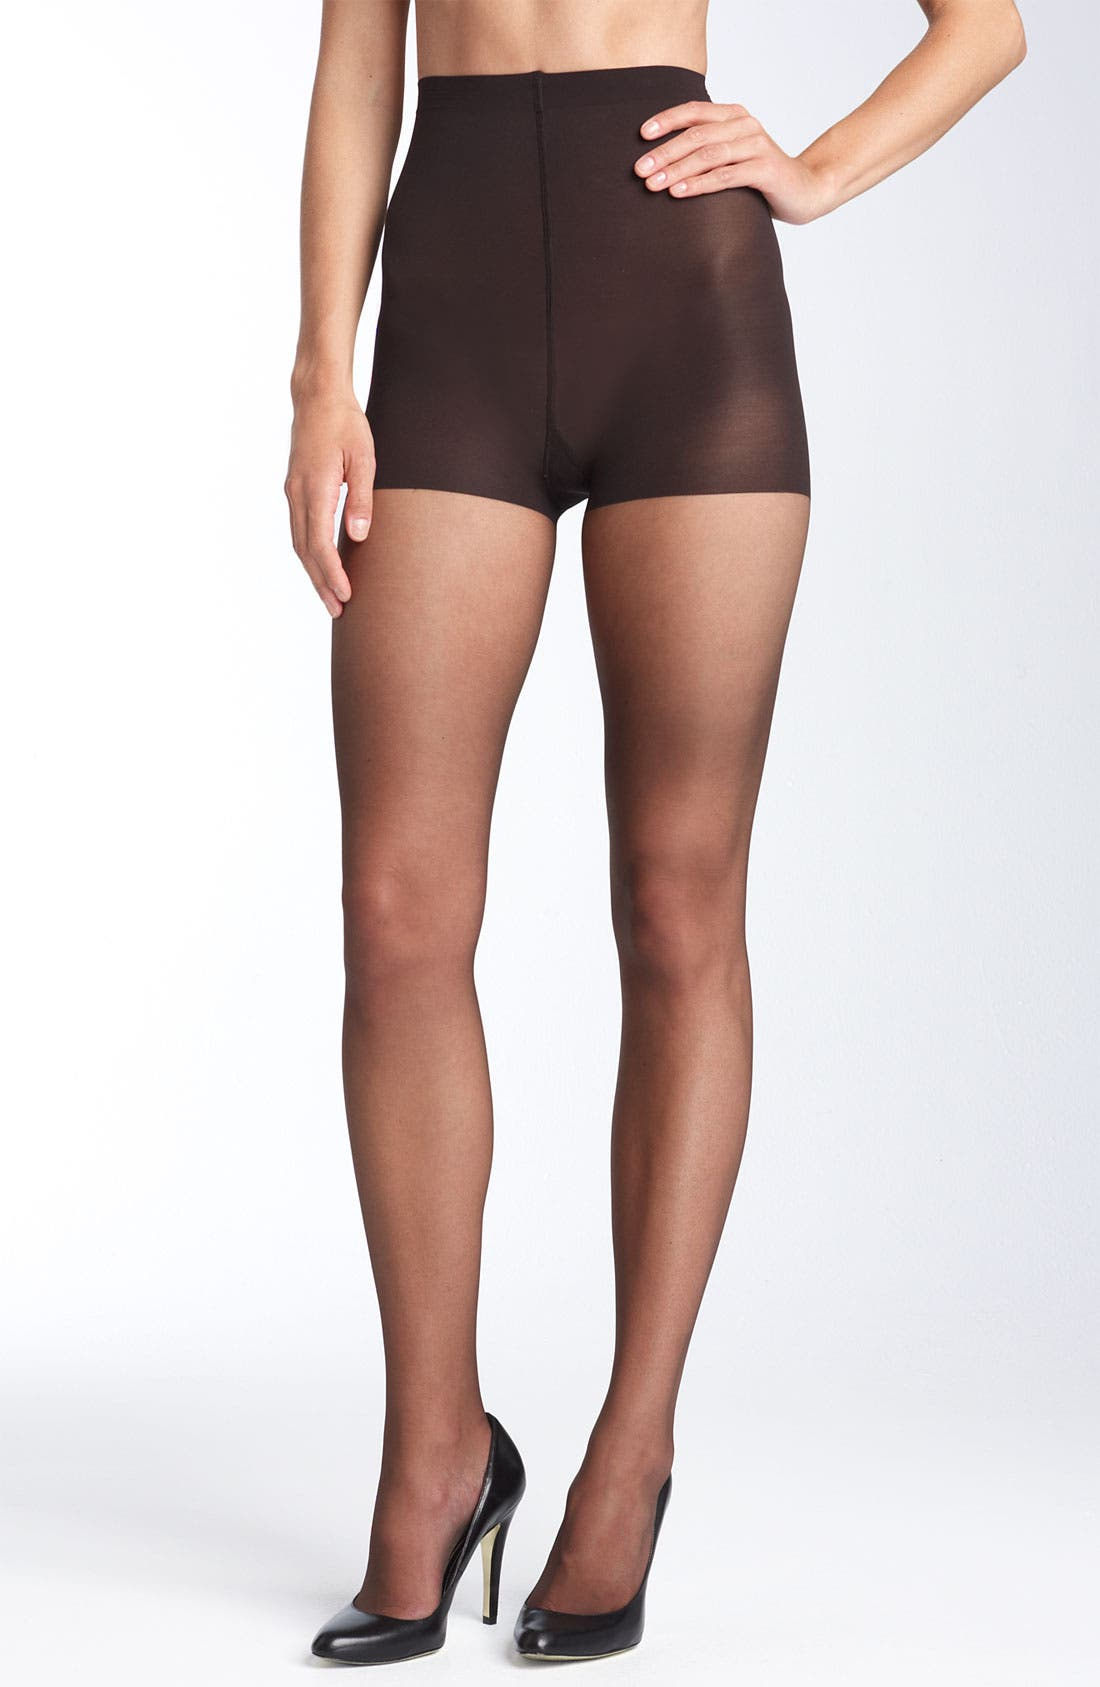 Alternate Image 1 Selected - Donna Karan 'Ultra Sheer' Control Top Pantyhose